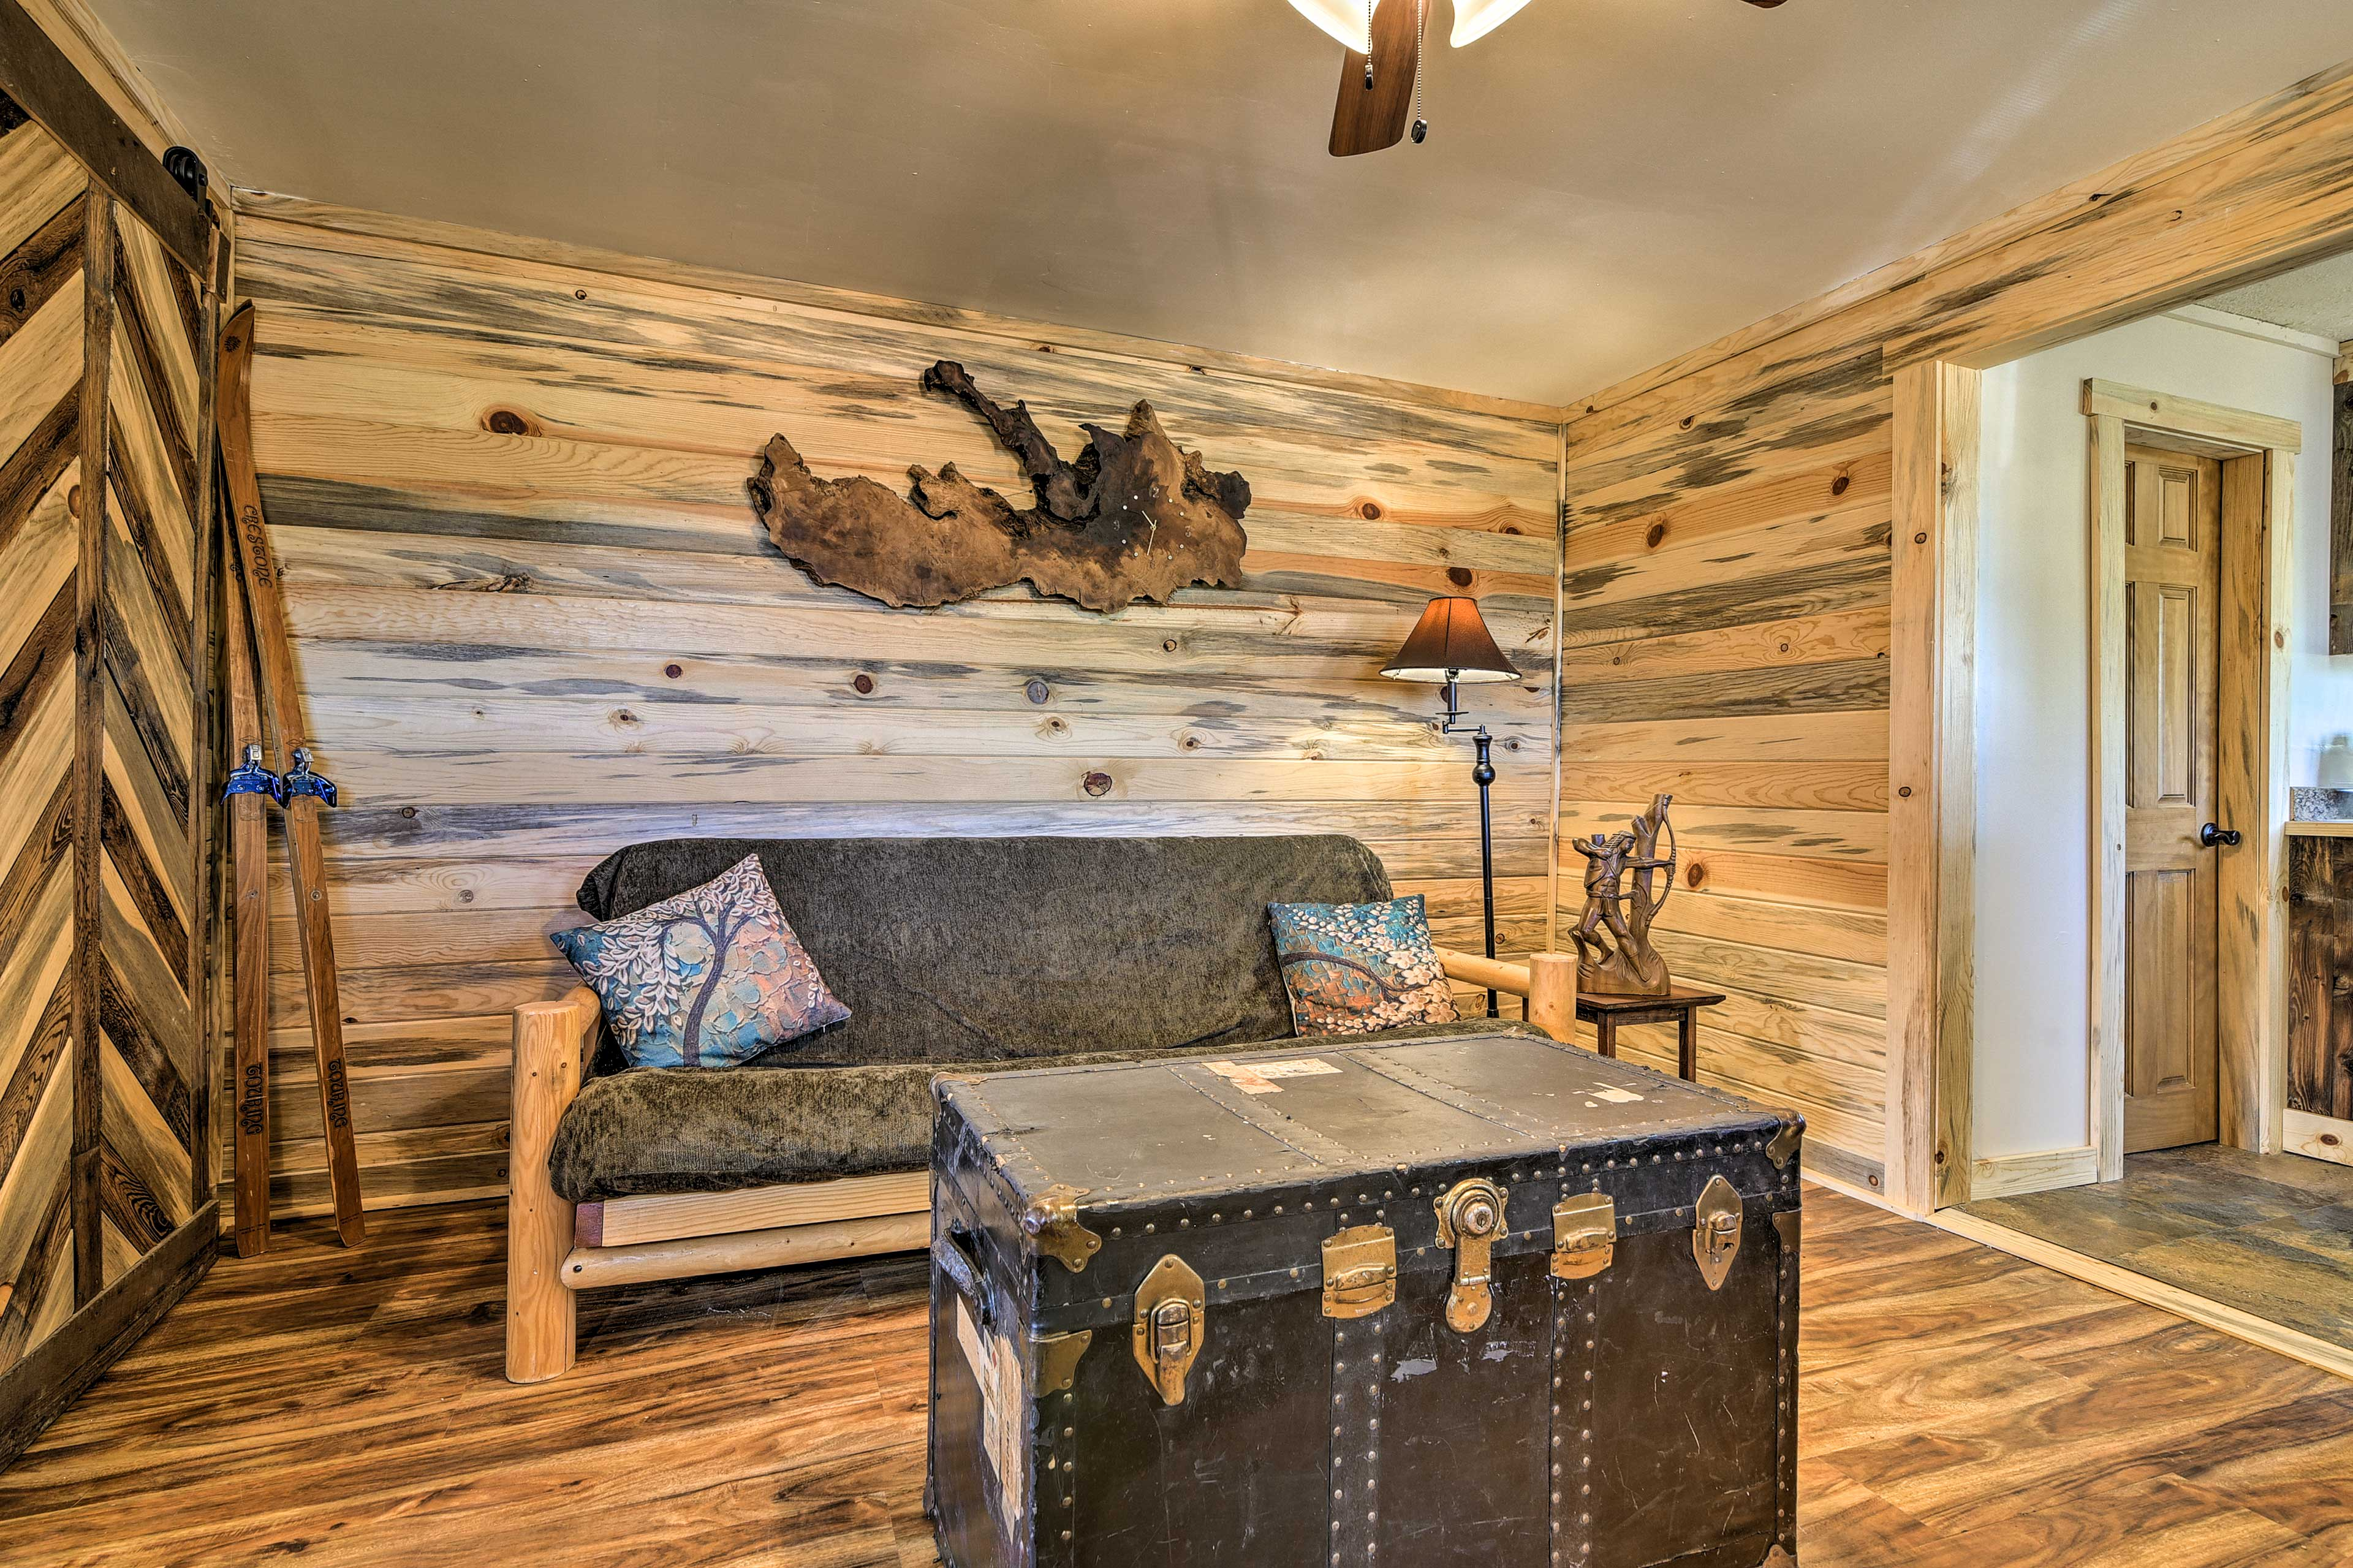 The wood detailing in the cabin is truly stunning!